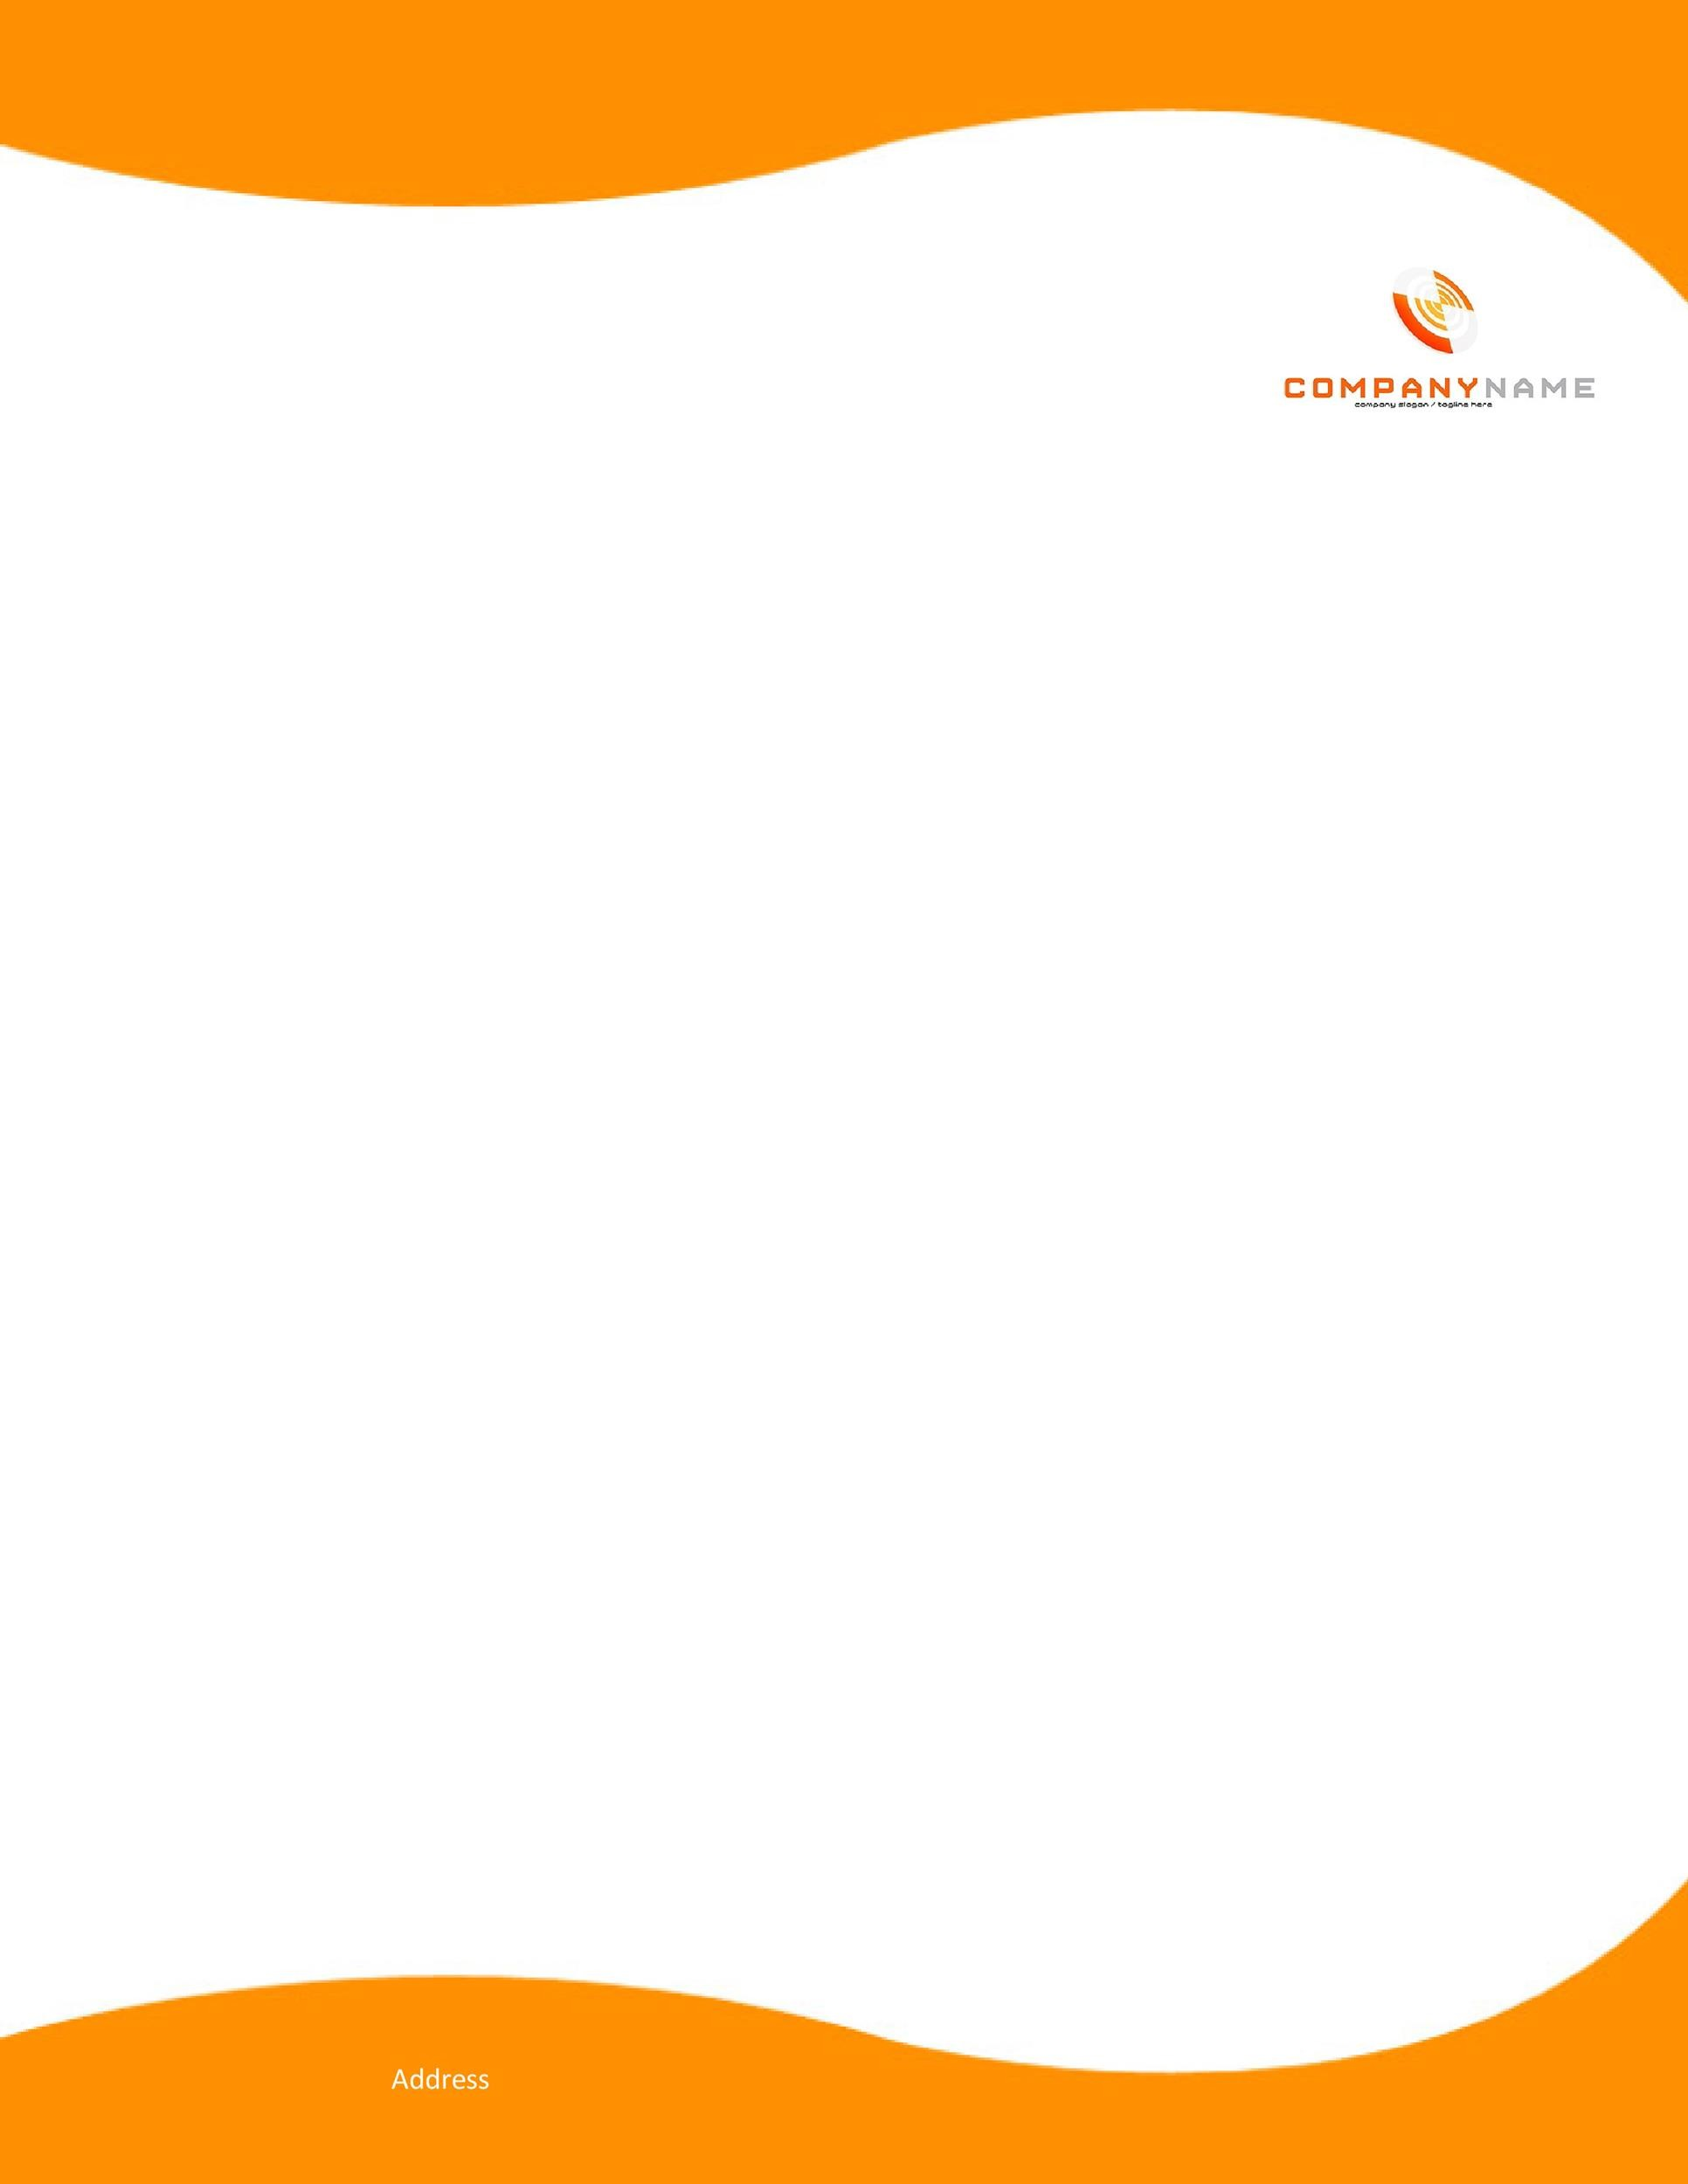 Printable Letterhead Template Word 01  Free Business Letterhead Templates For Word